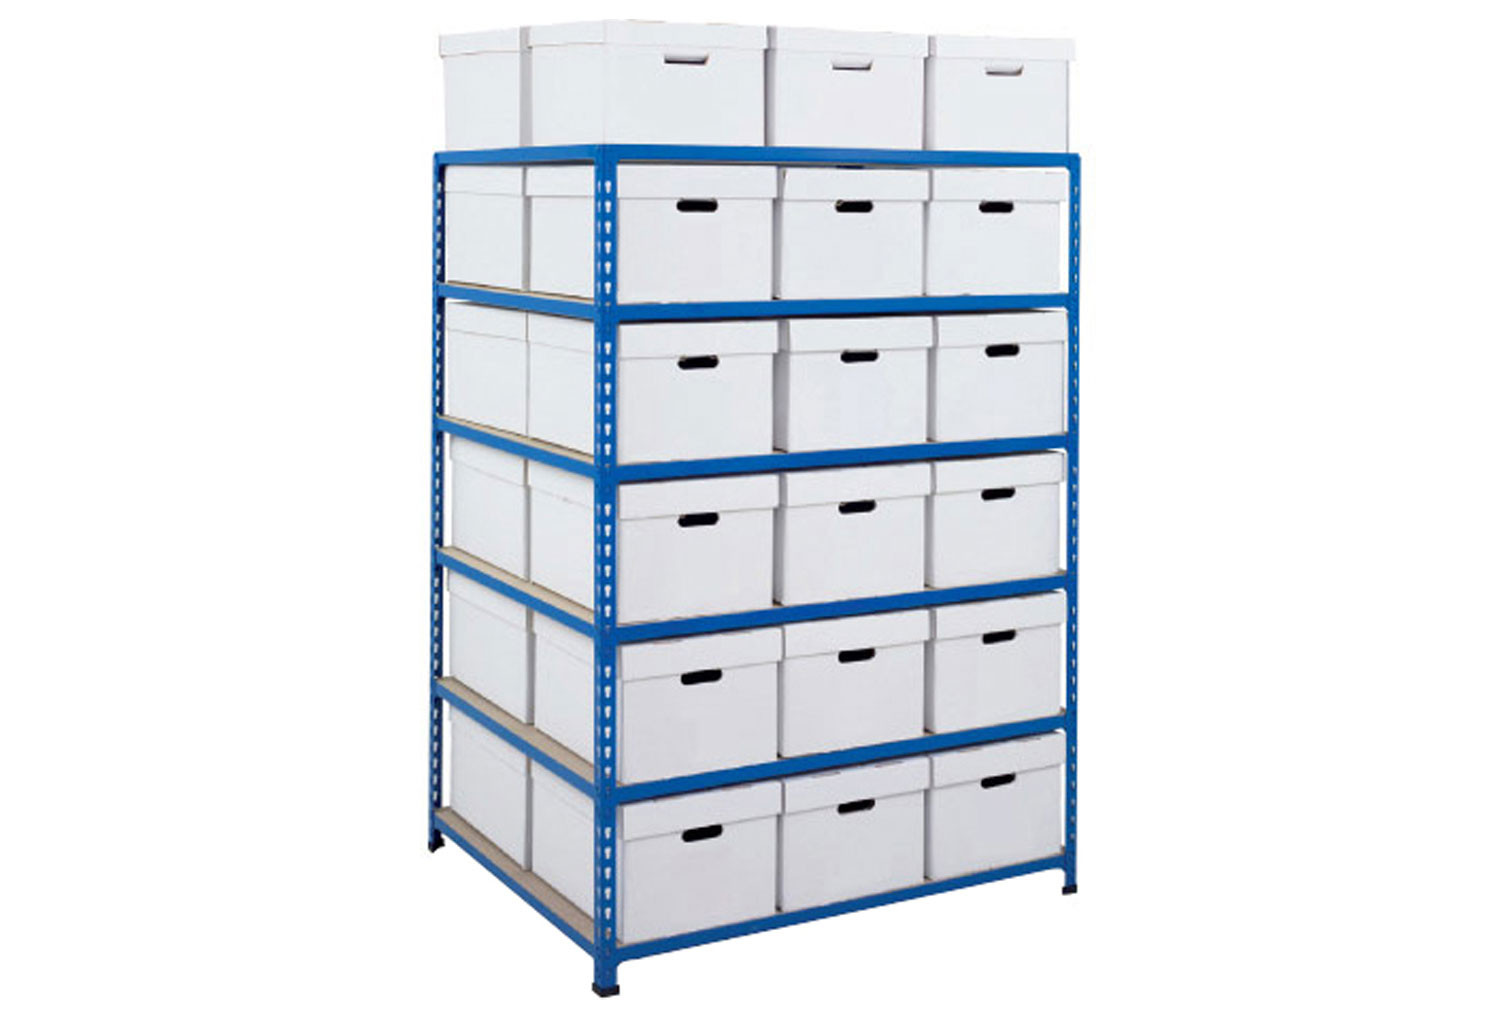 Rapid 2 double sided storage bay with 36 white document boxes